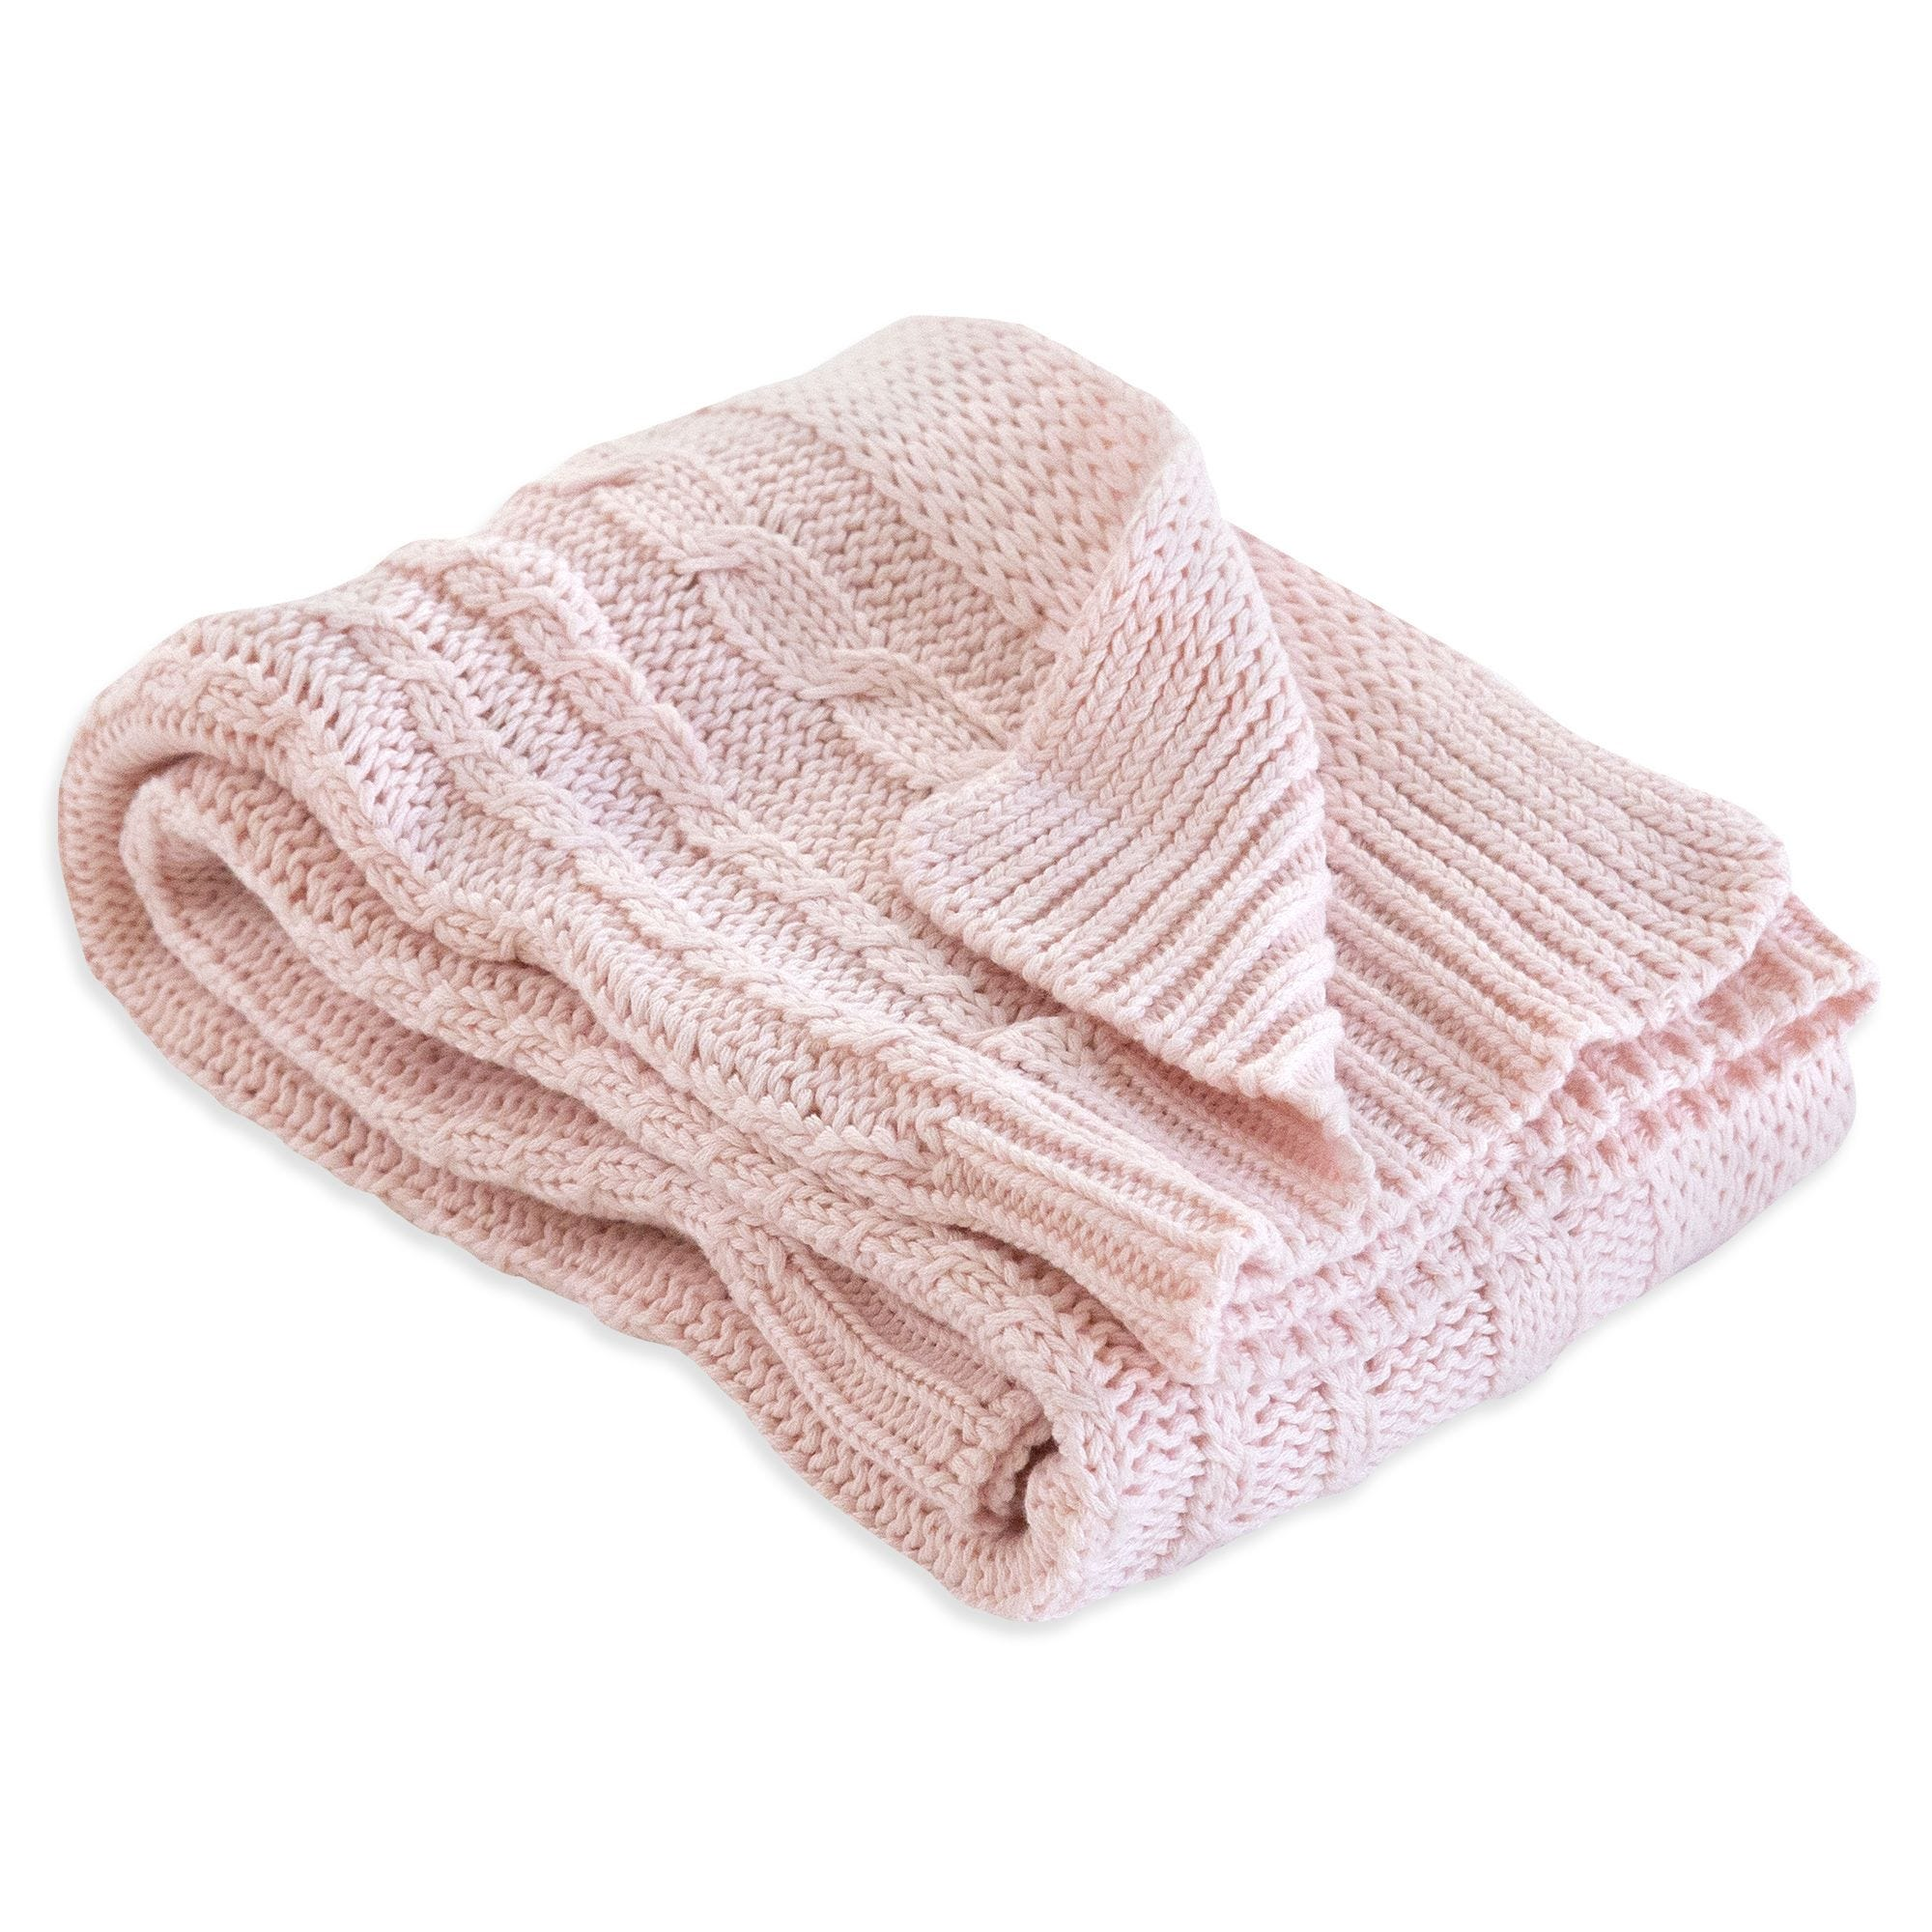 1f54f8cefd Organic Cable Knit Organic Baby Sweater Blanket